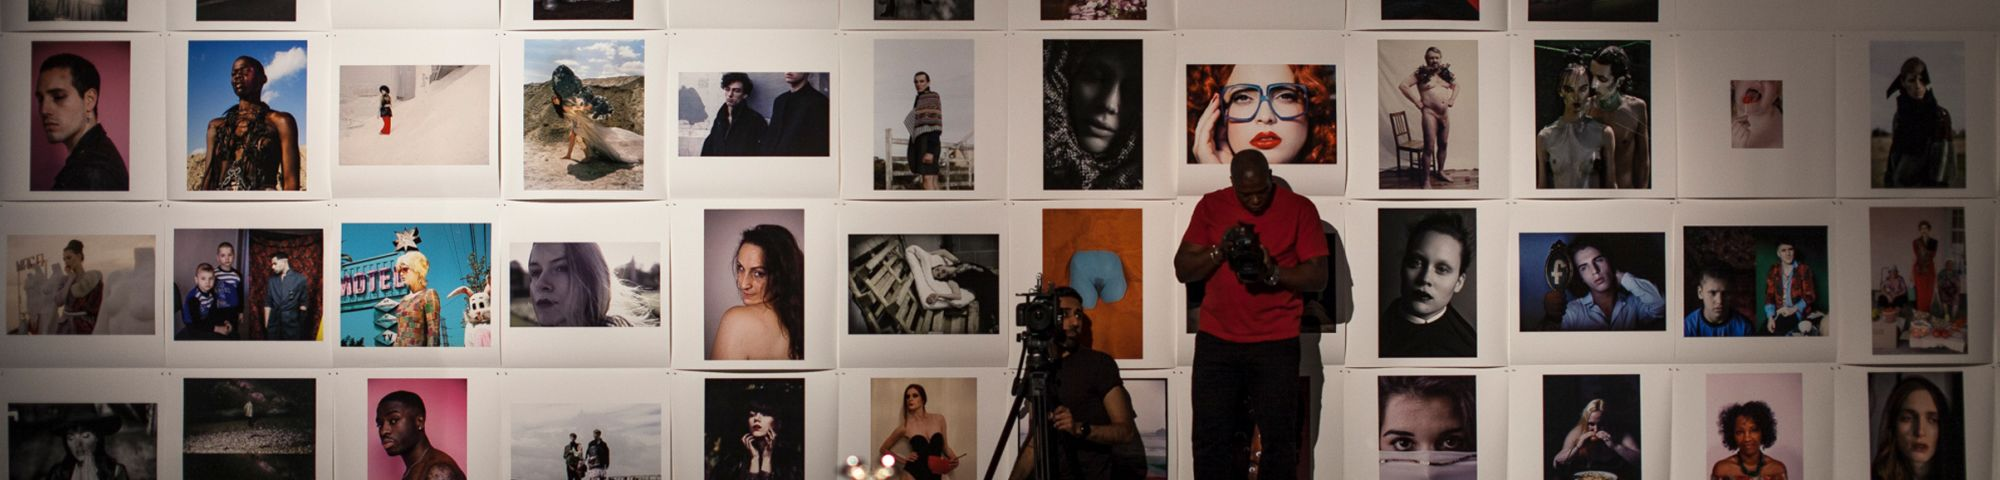 Collage of photos against a white wall with a man standing infron